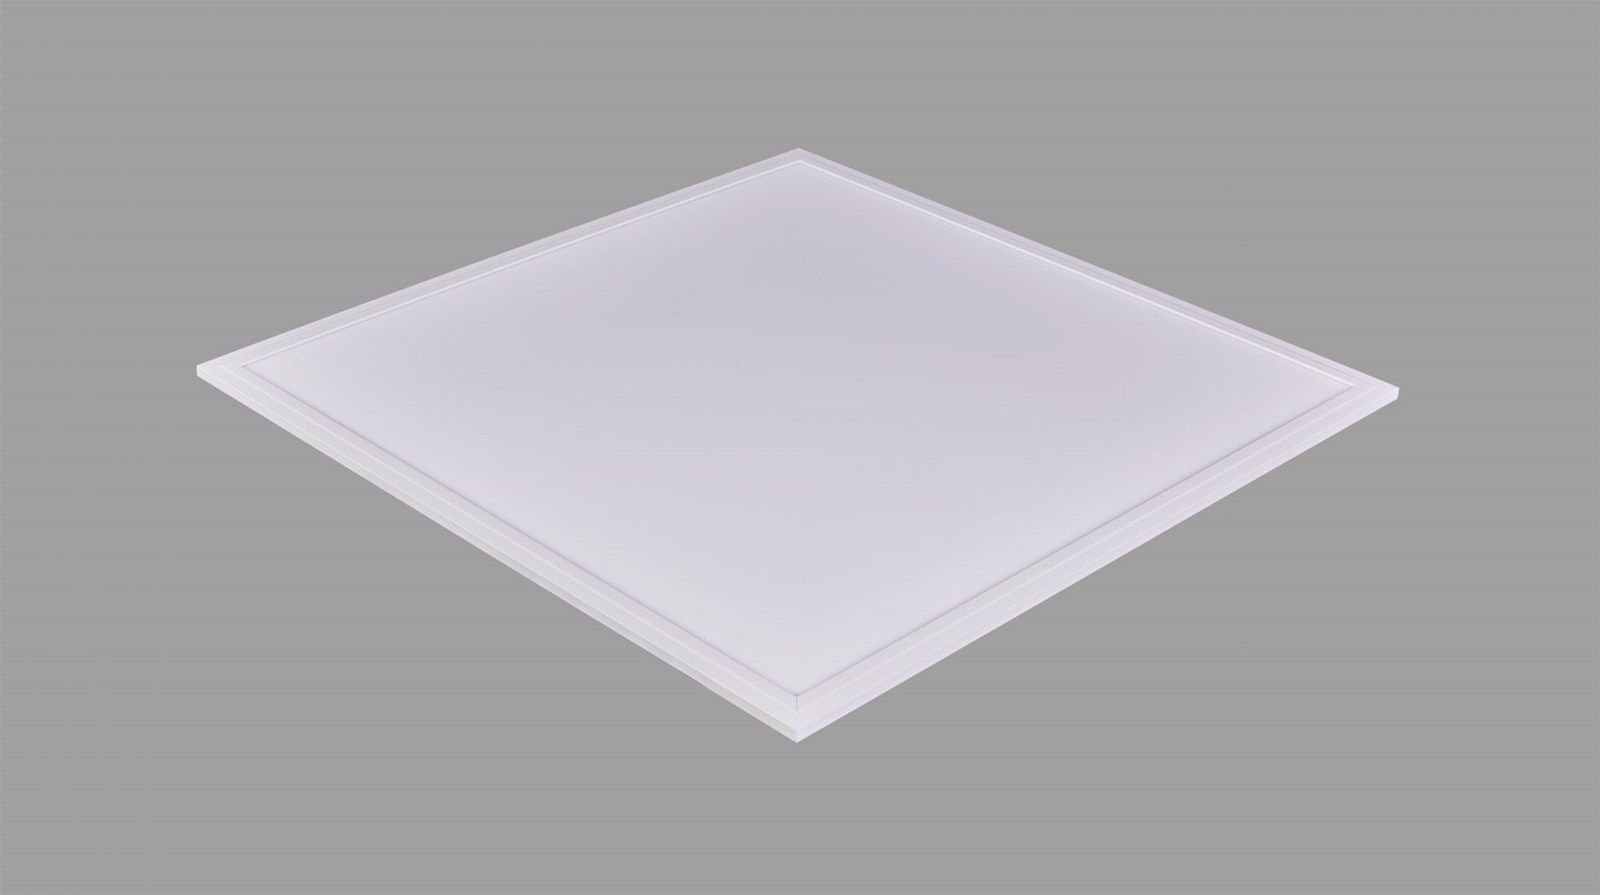 2019 Best Seller 1x4 2x2 2x4 Led Panel Light Led Ceiling Panel Light With Ul Dlc4 4 Led Panel Light Led Ceiling Led Ceiling Panel Light